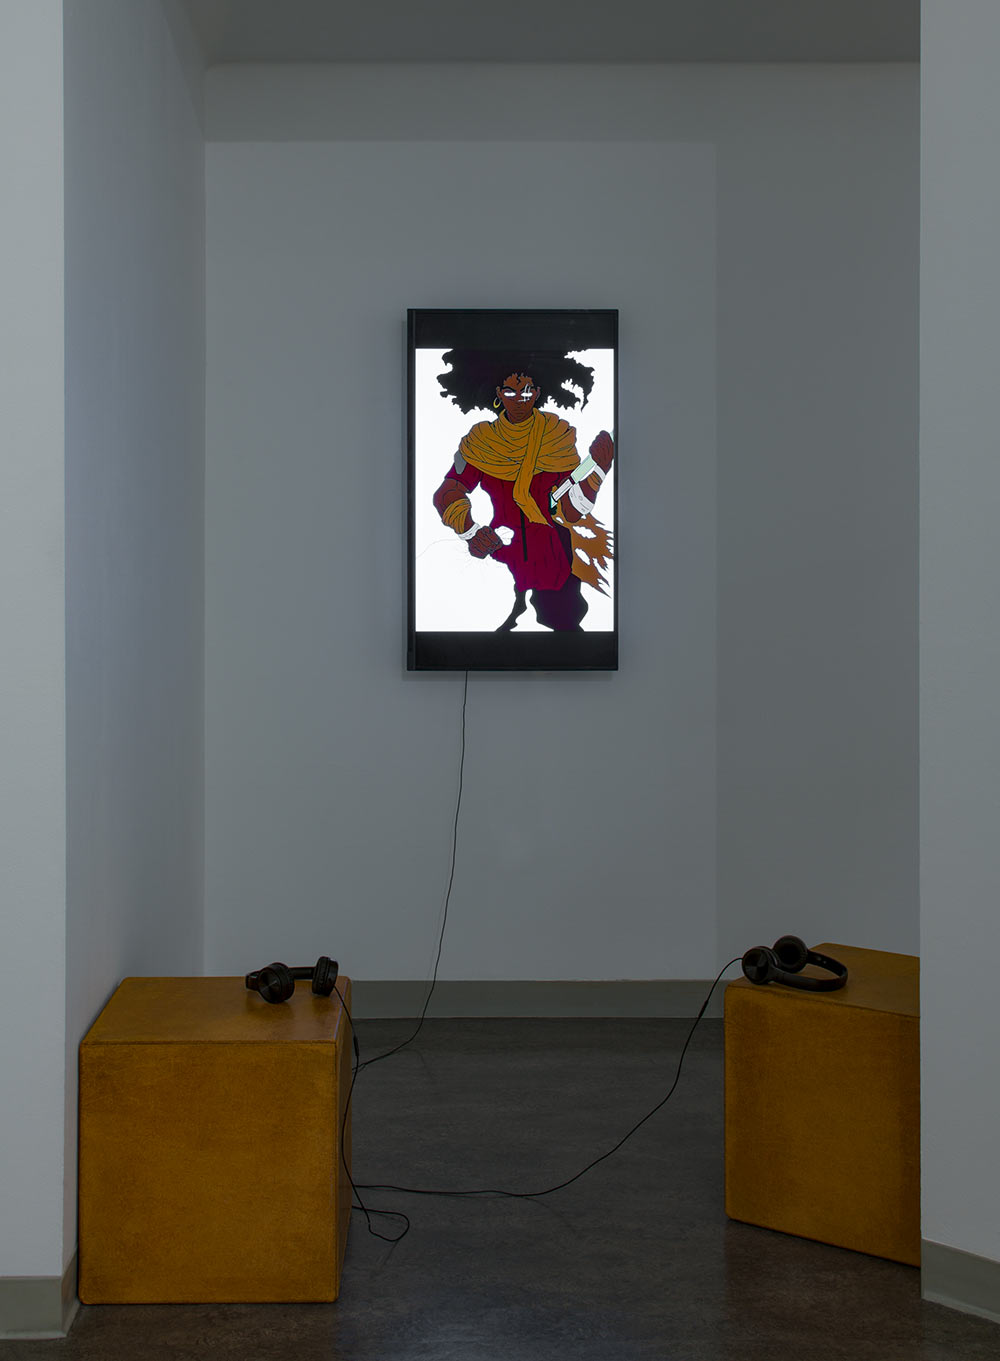 Photograph of a video piece by Torren Broussard-Boston installed in the Vachon Gallery